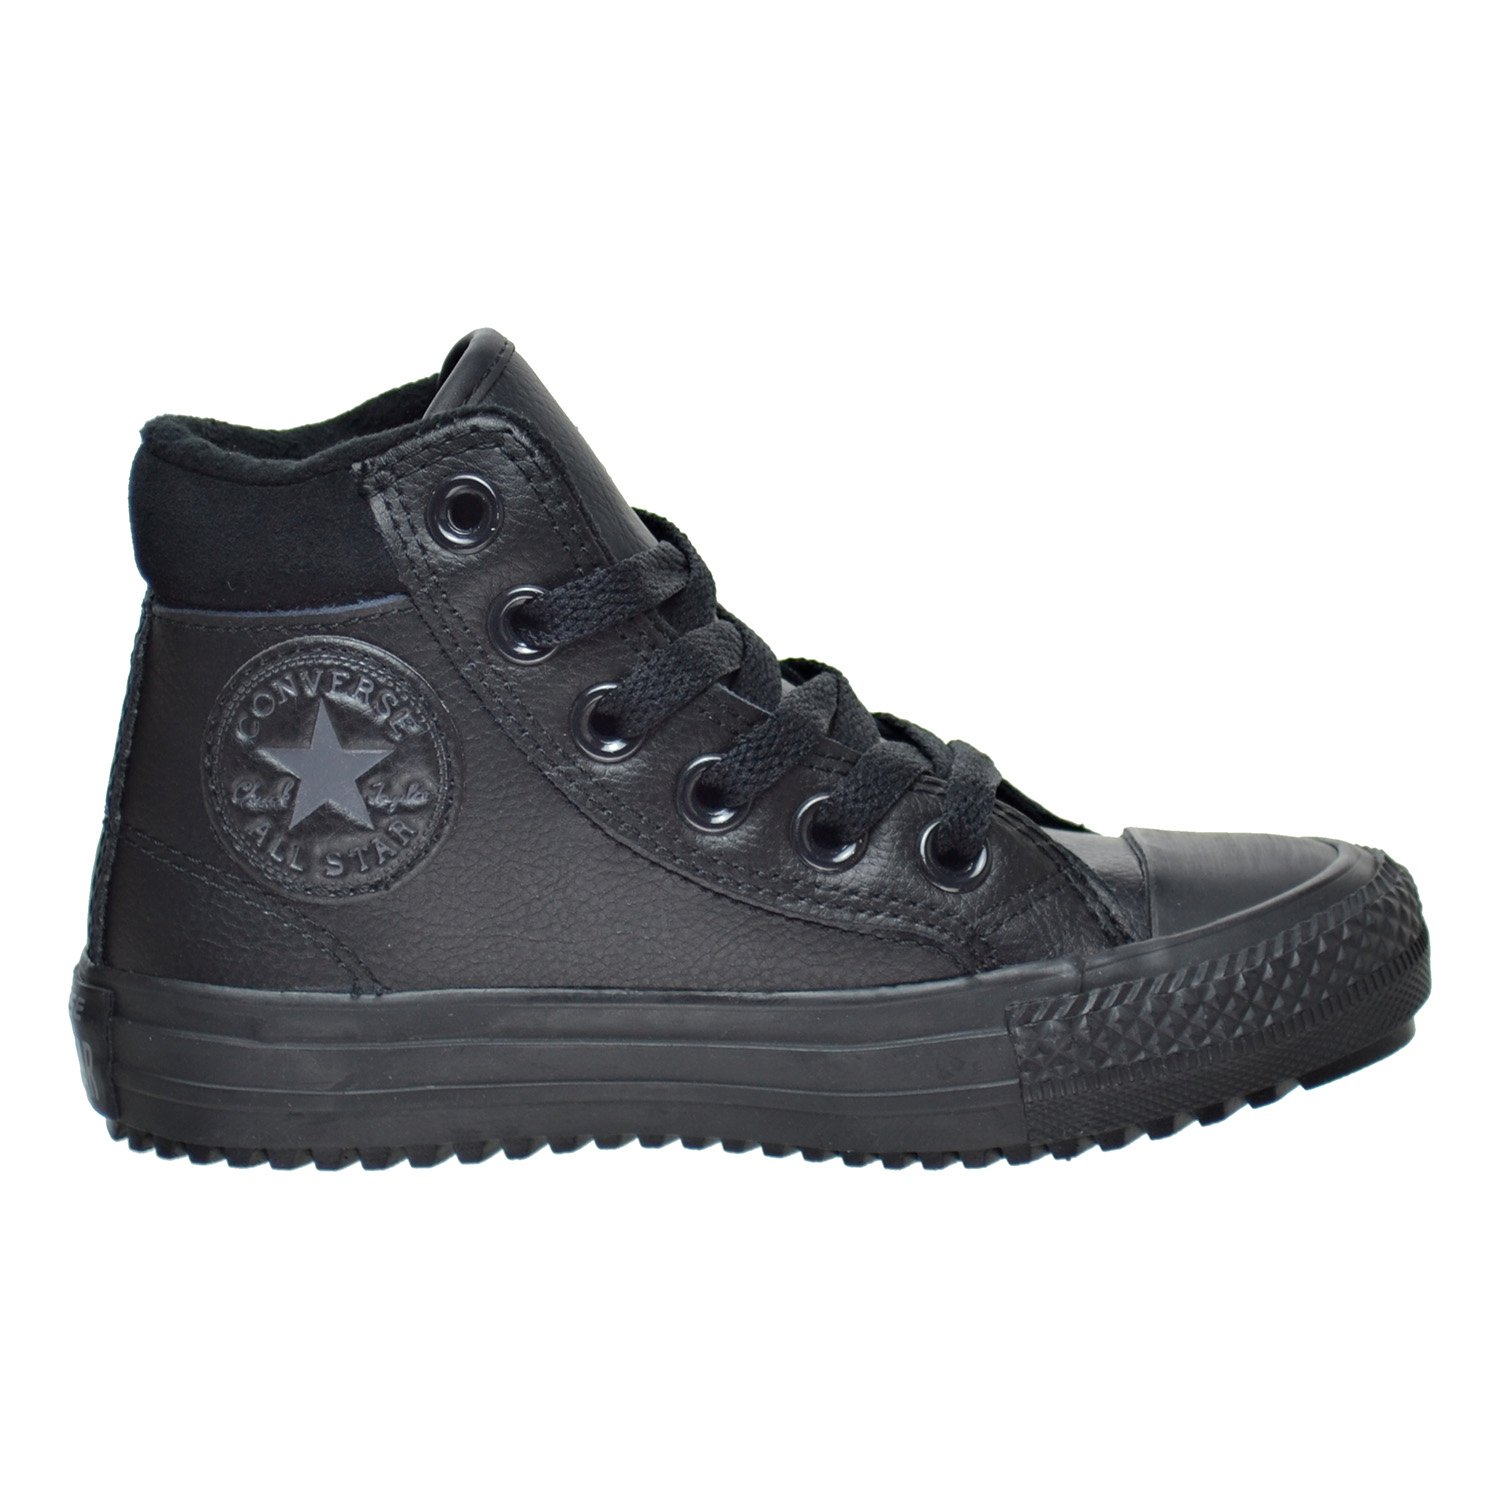 a34d8763630b7f Converse Chuck Taylor All Star Weatherized Junior Black Leather Ankle  Boots  Amazon.co.uk  Shoes   Bags